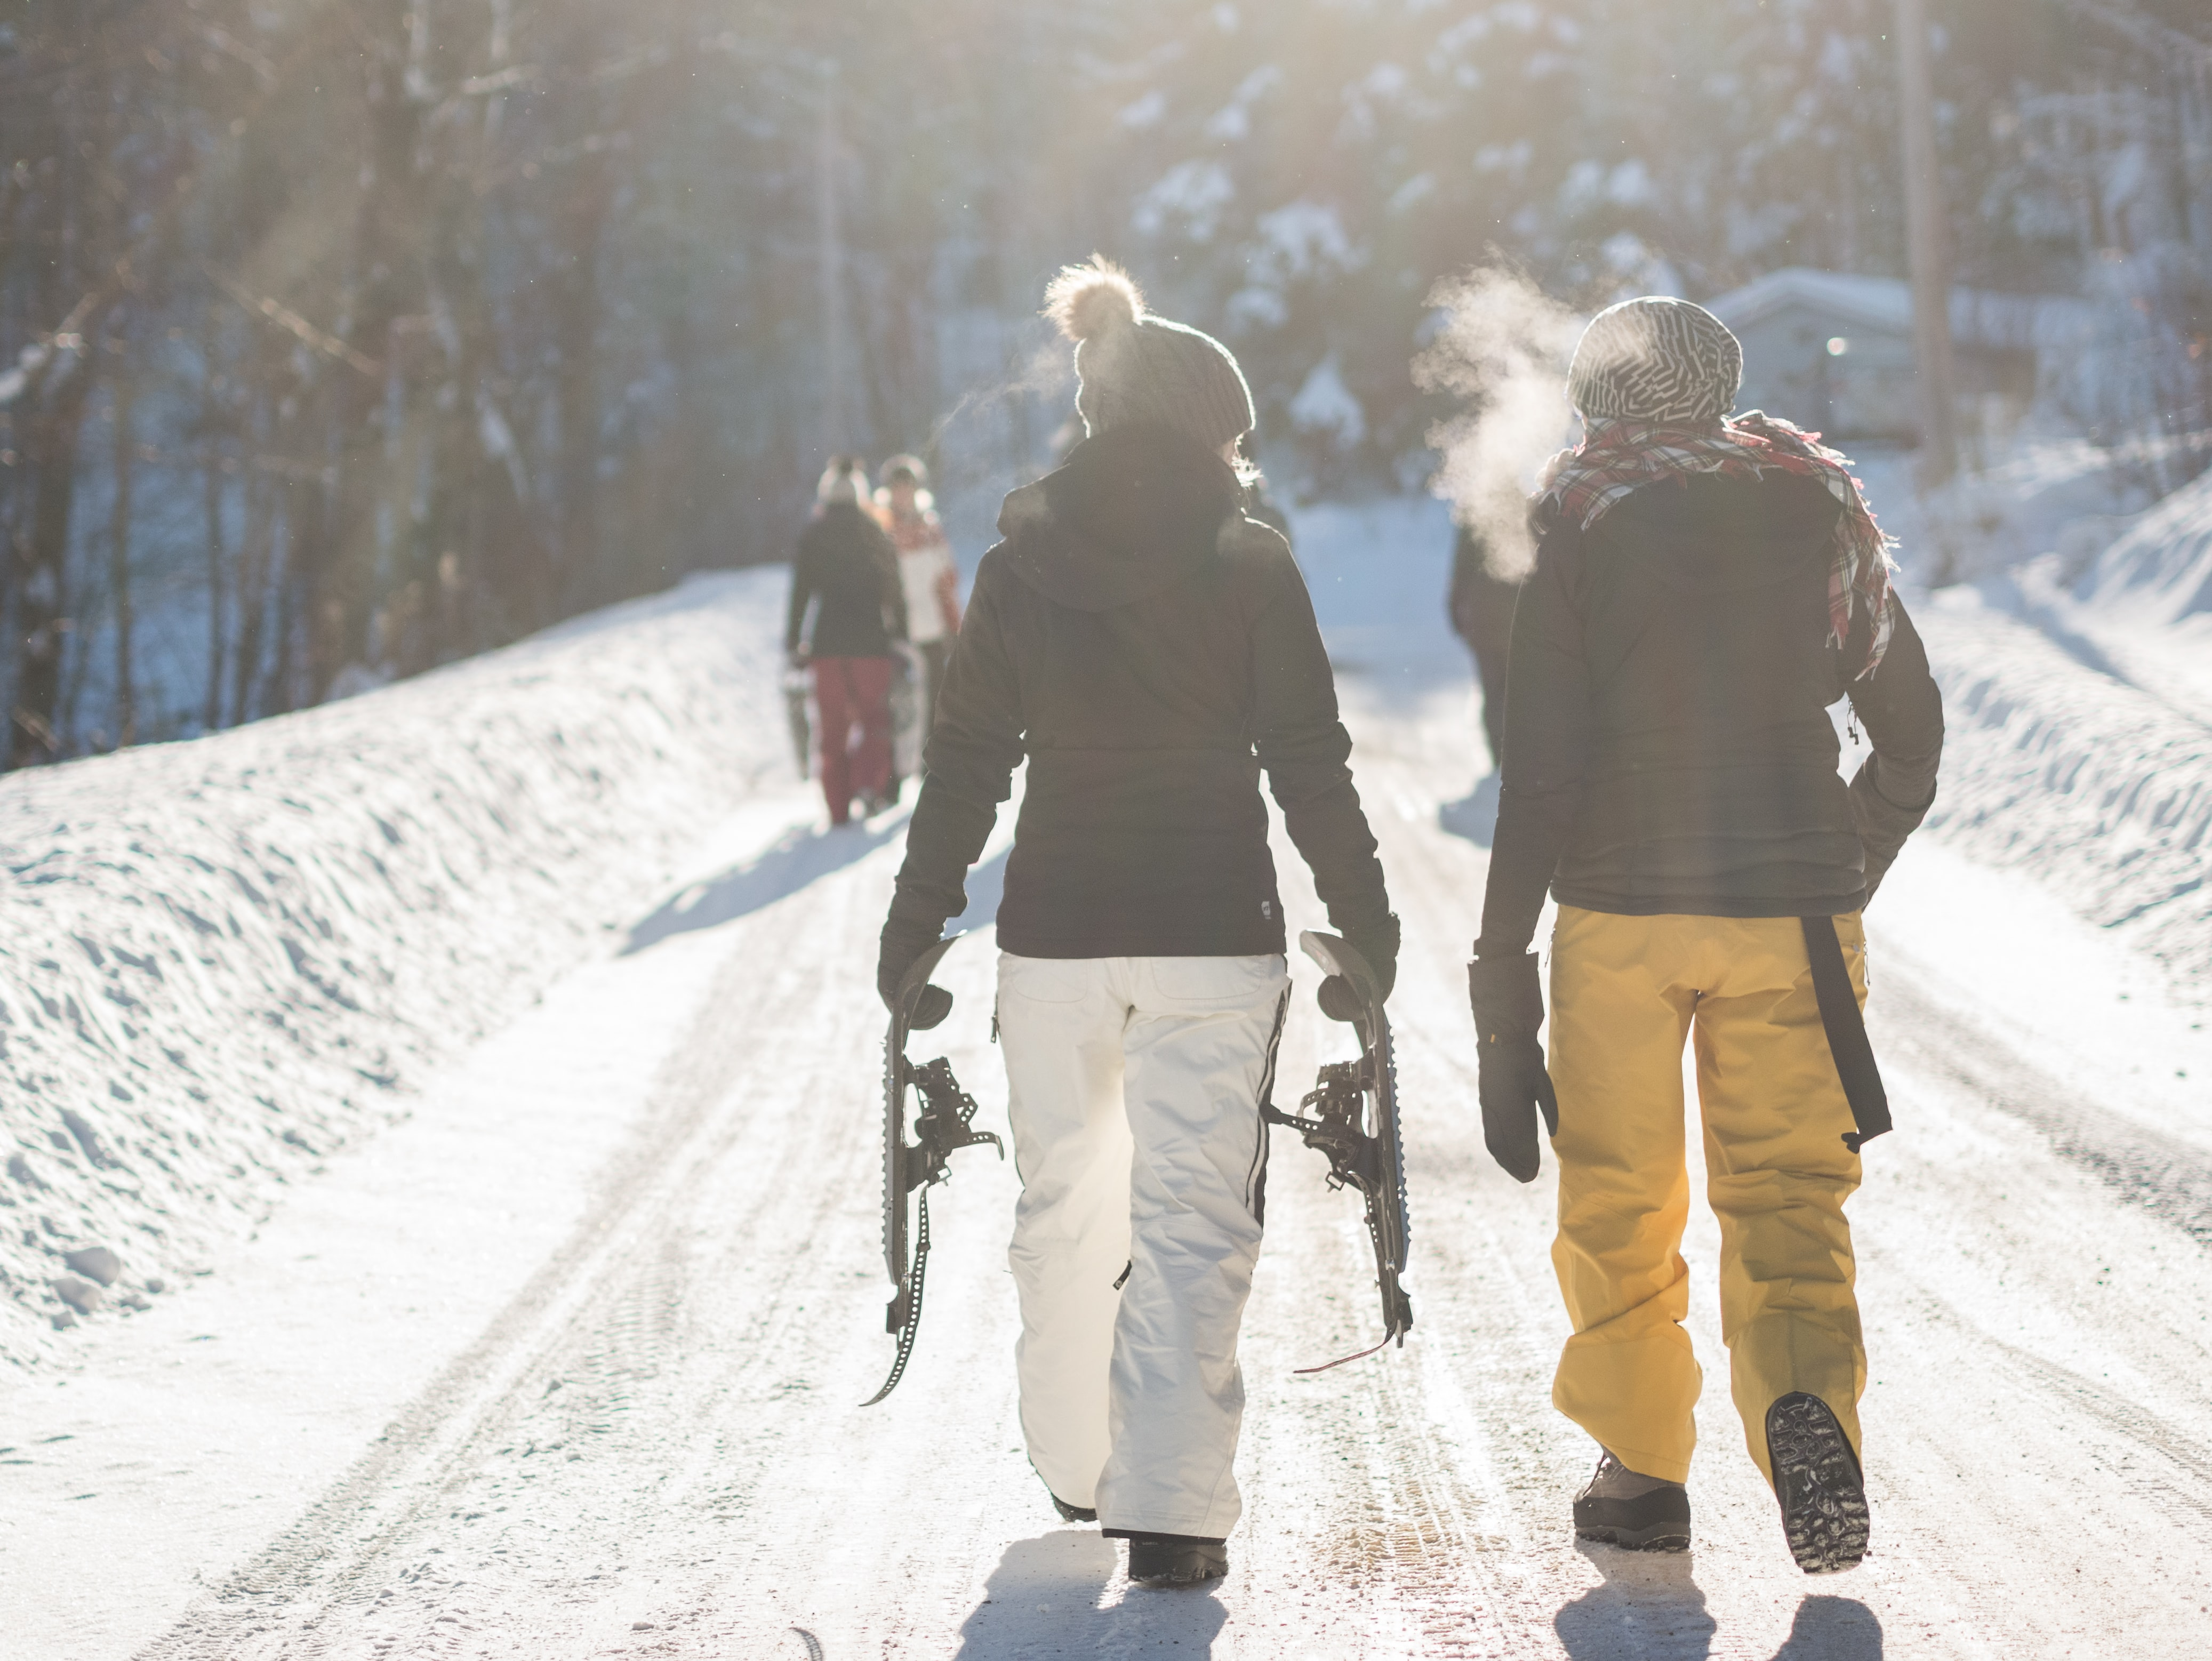 A few snowboarders walking a winter path with visible breath